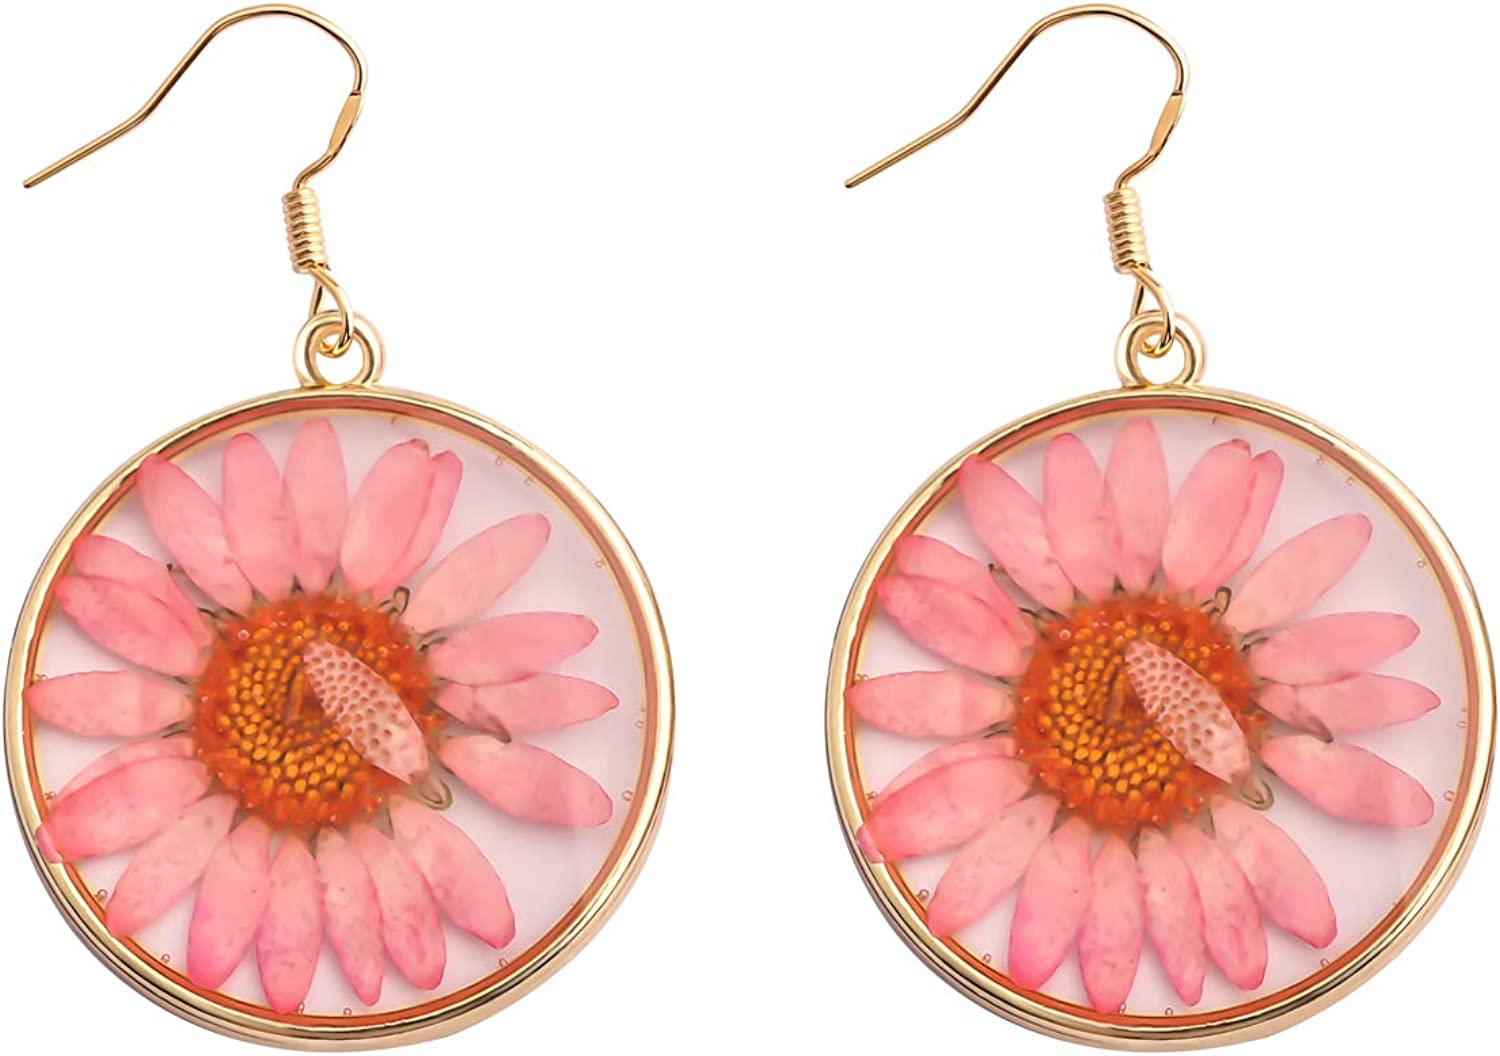 real pink flower resin jewelry set pink daisy necklace Jewlery set pressed real flower jewelry resin jewelry pink daisy dangle earrings